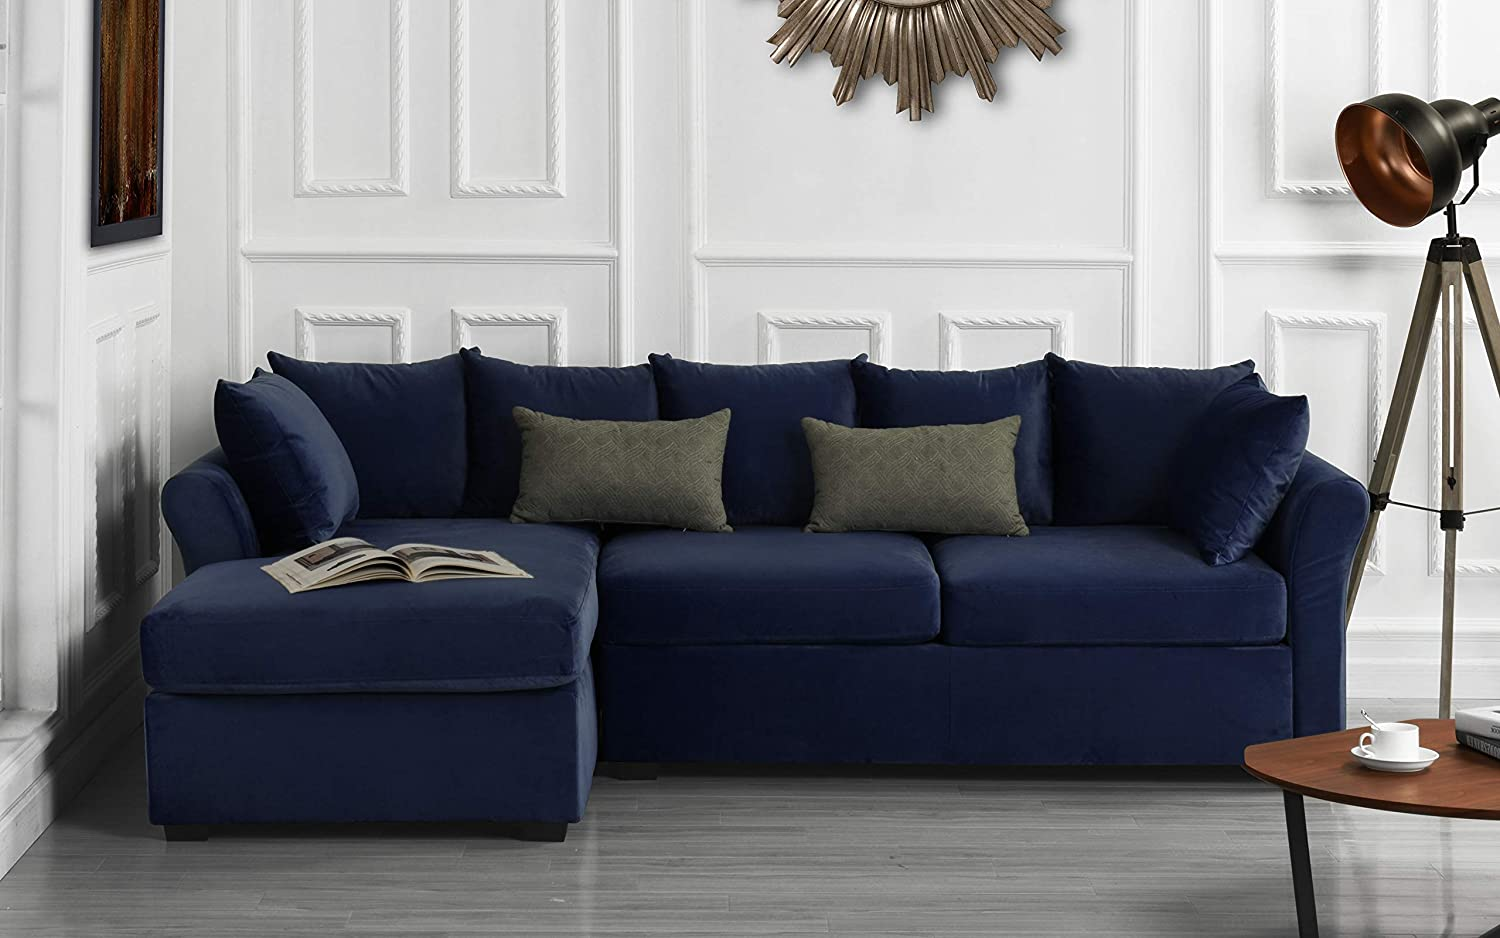 Modern Large Velvet Sectional Sofa, L-Shape Couch with Extra Wide Chaise  Lounge (Navy)